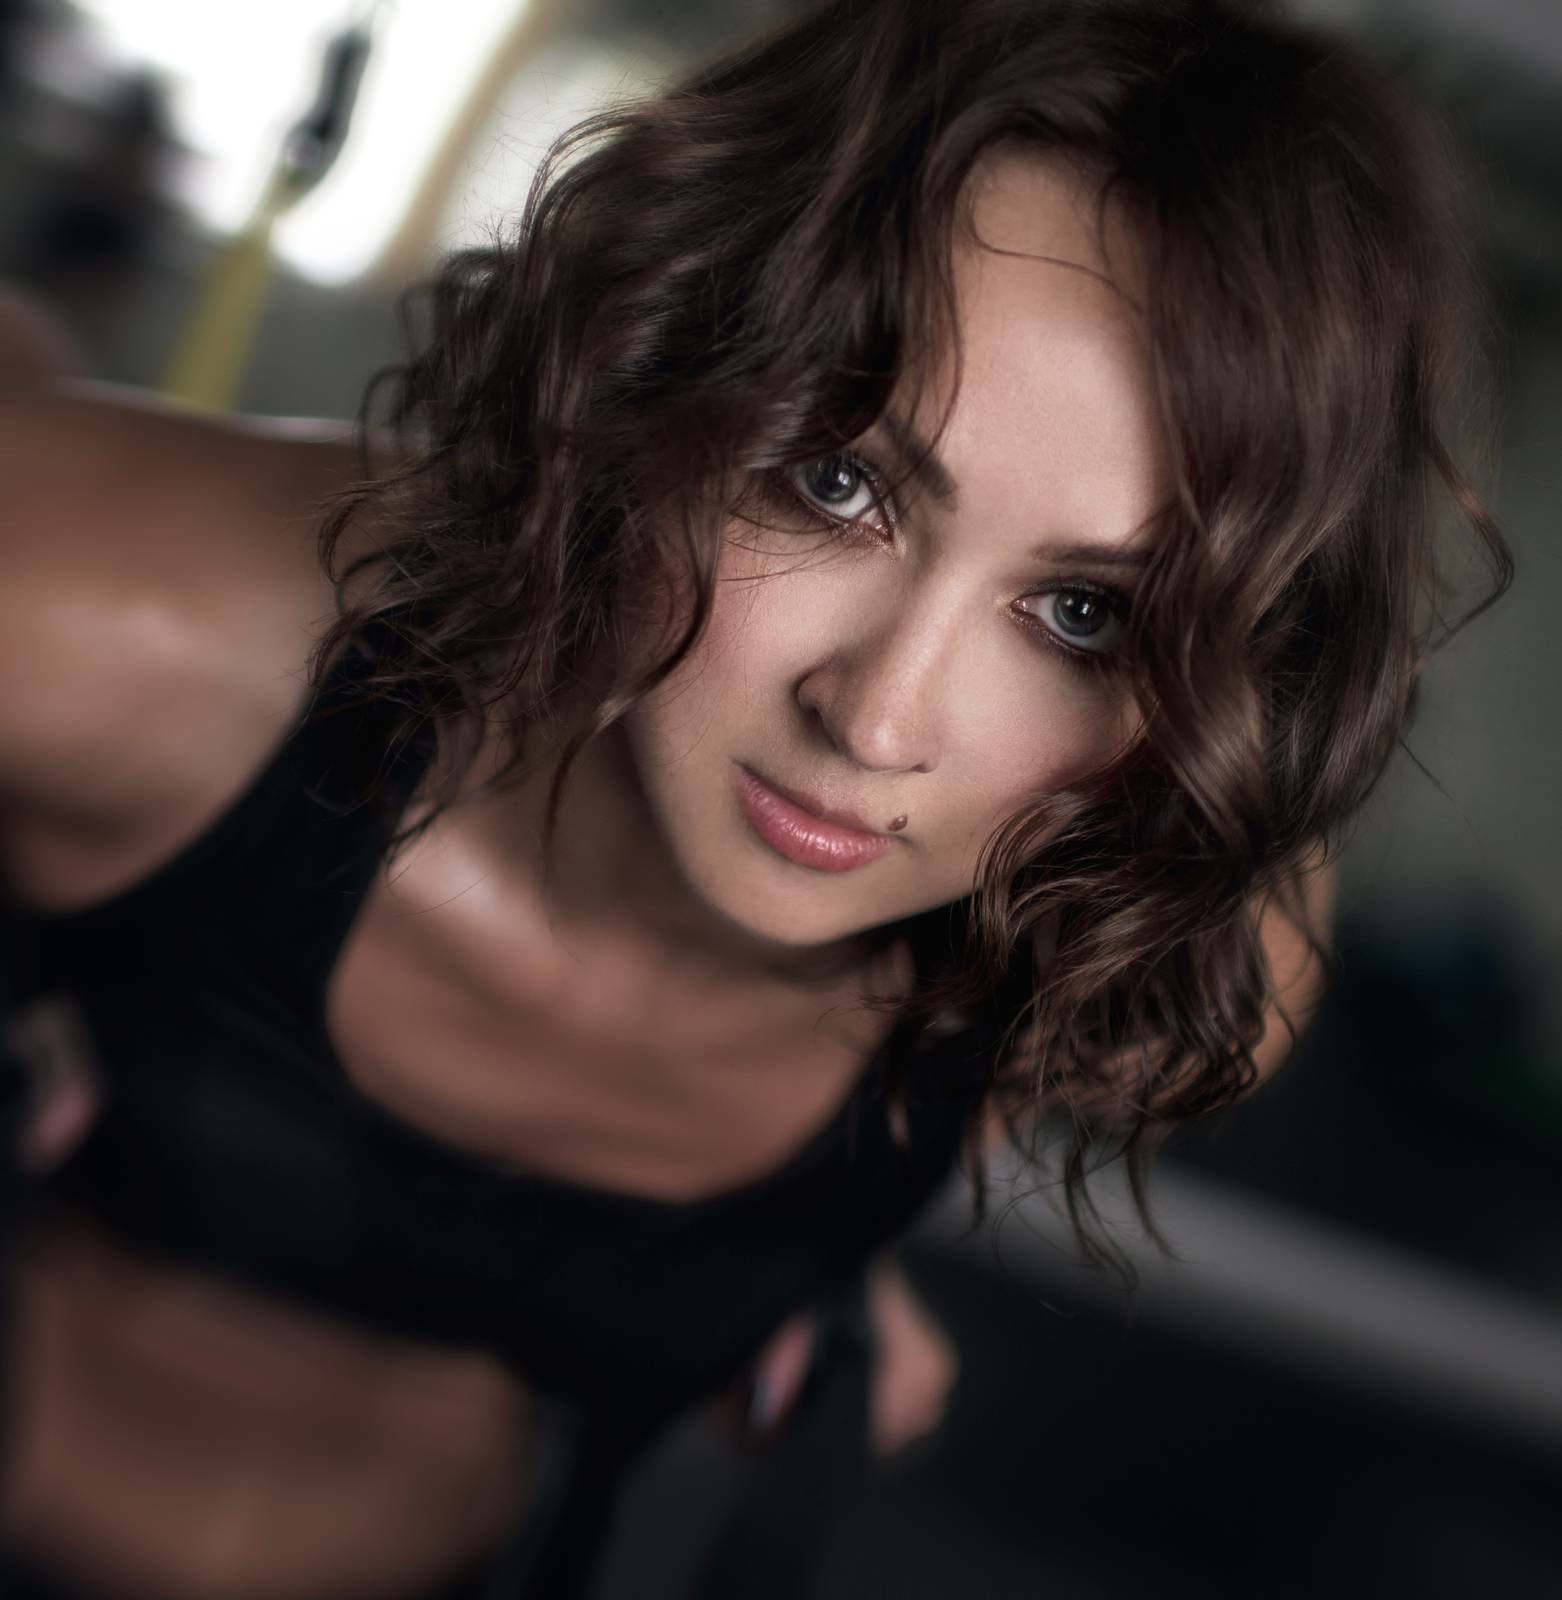 a beautiful face, a woman over 30, cardio workout, drying in training, exercise, exercise for girls - D21746392